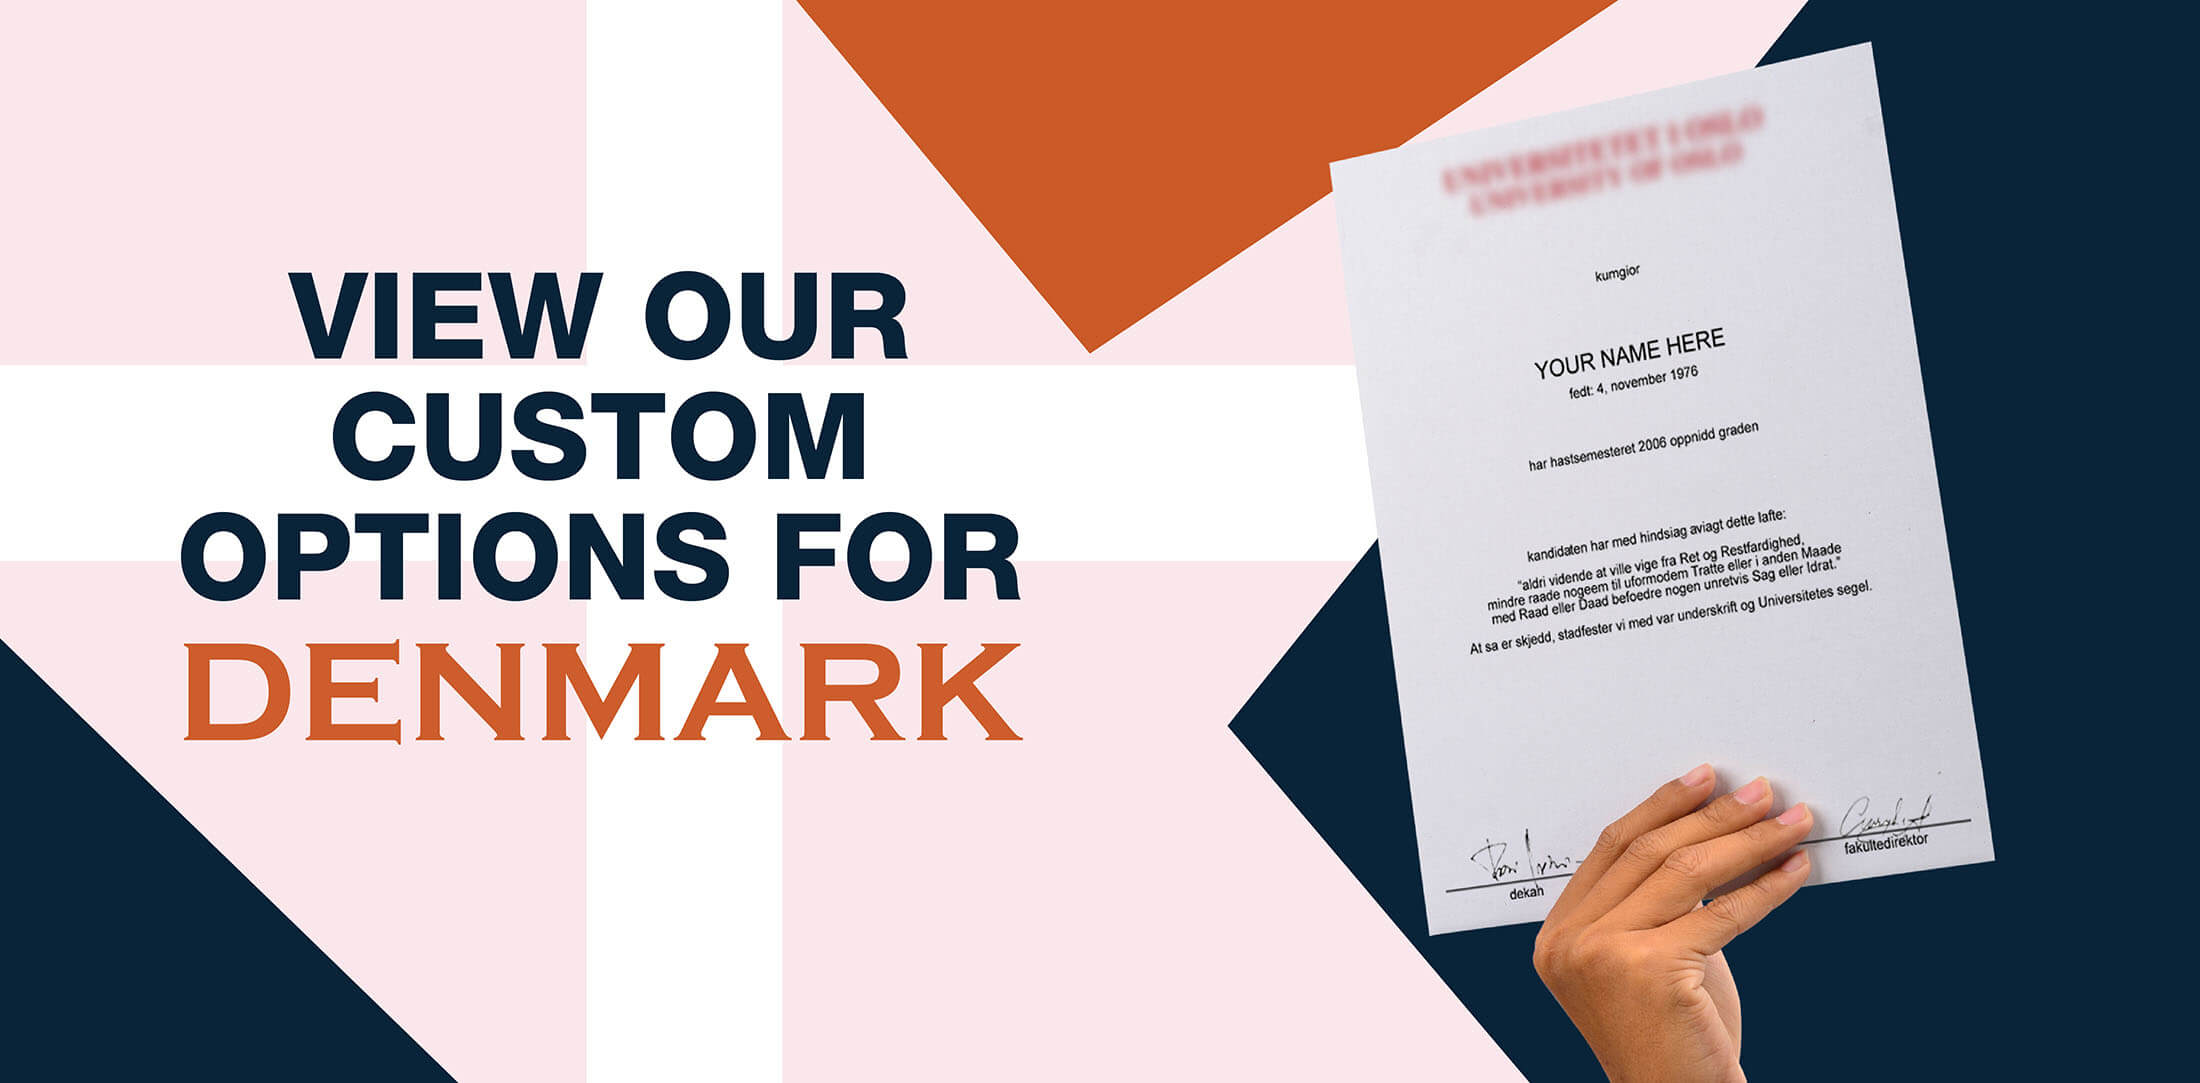 hands holding high quality realistic fake Denmark degrees from Diploma Company!